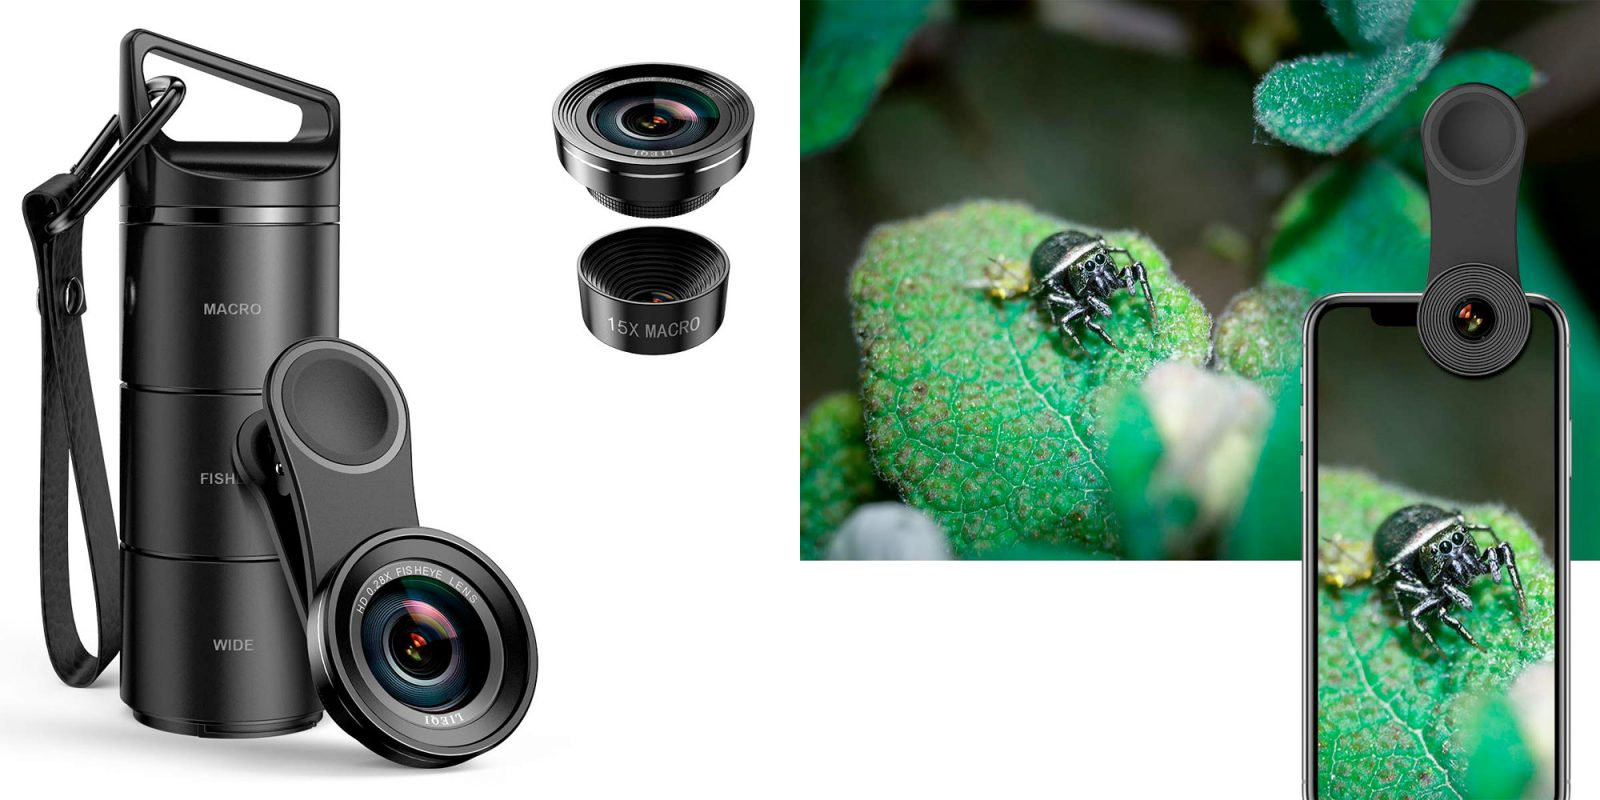 For $9 Prime shipped, every iPhone photographer needs this 3-in-1 lens kit